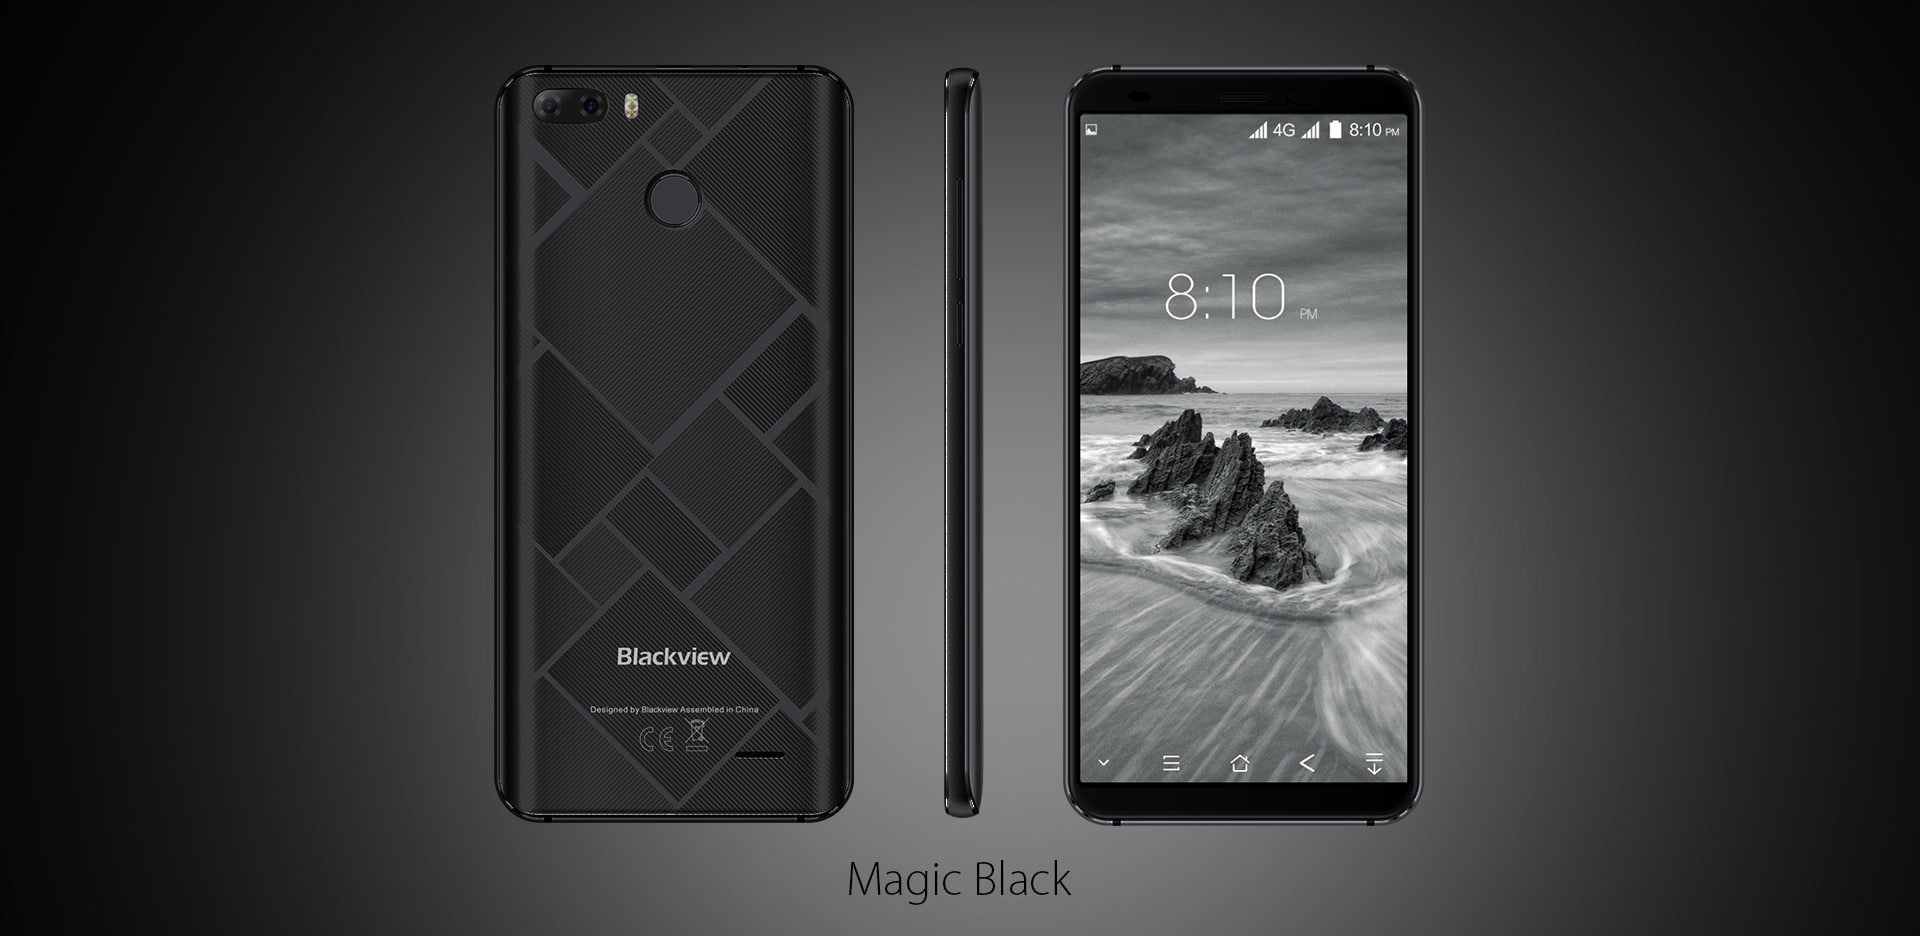 Blackview S6 and S6 Pro